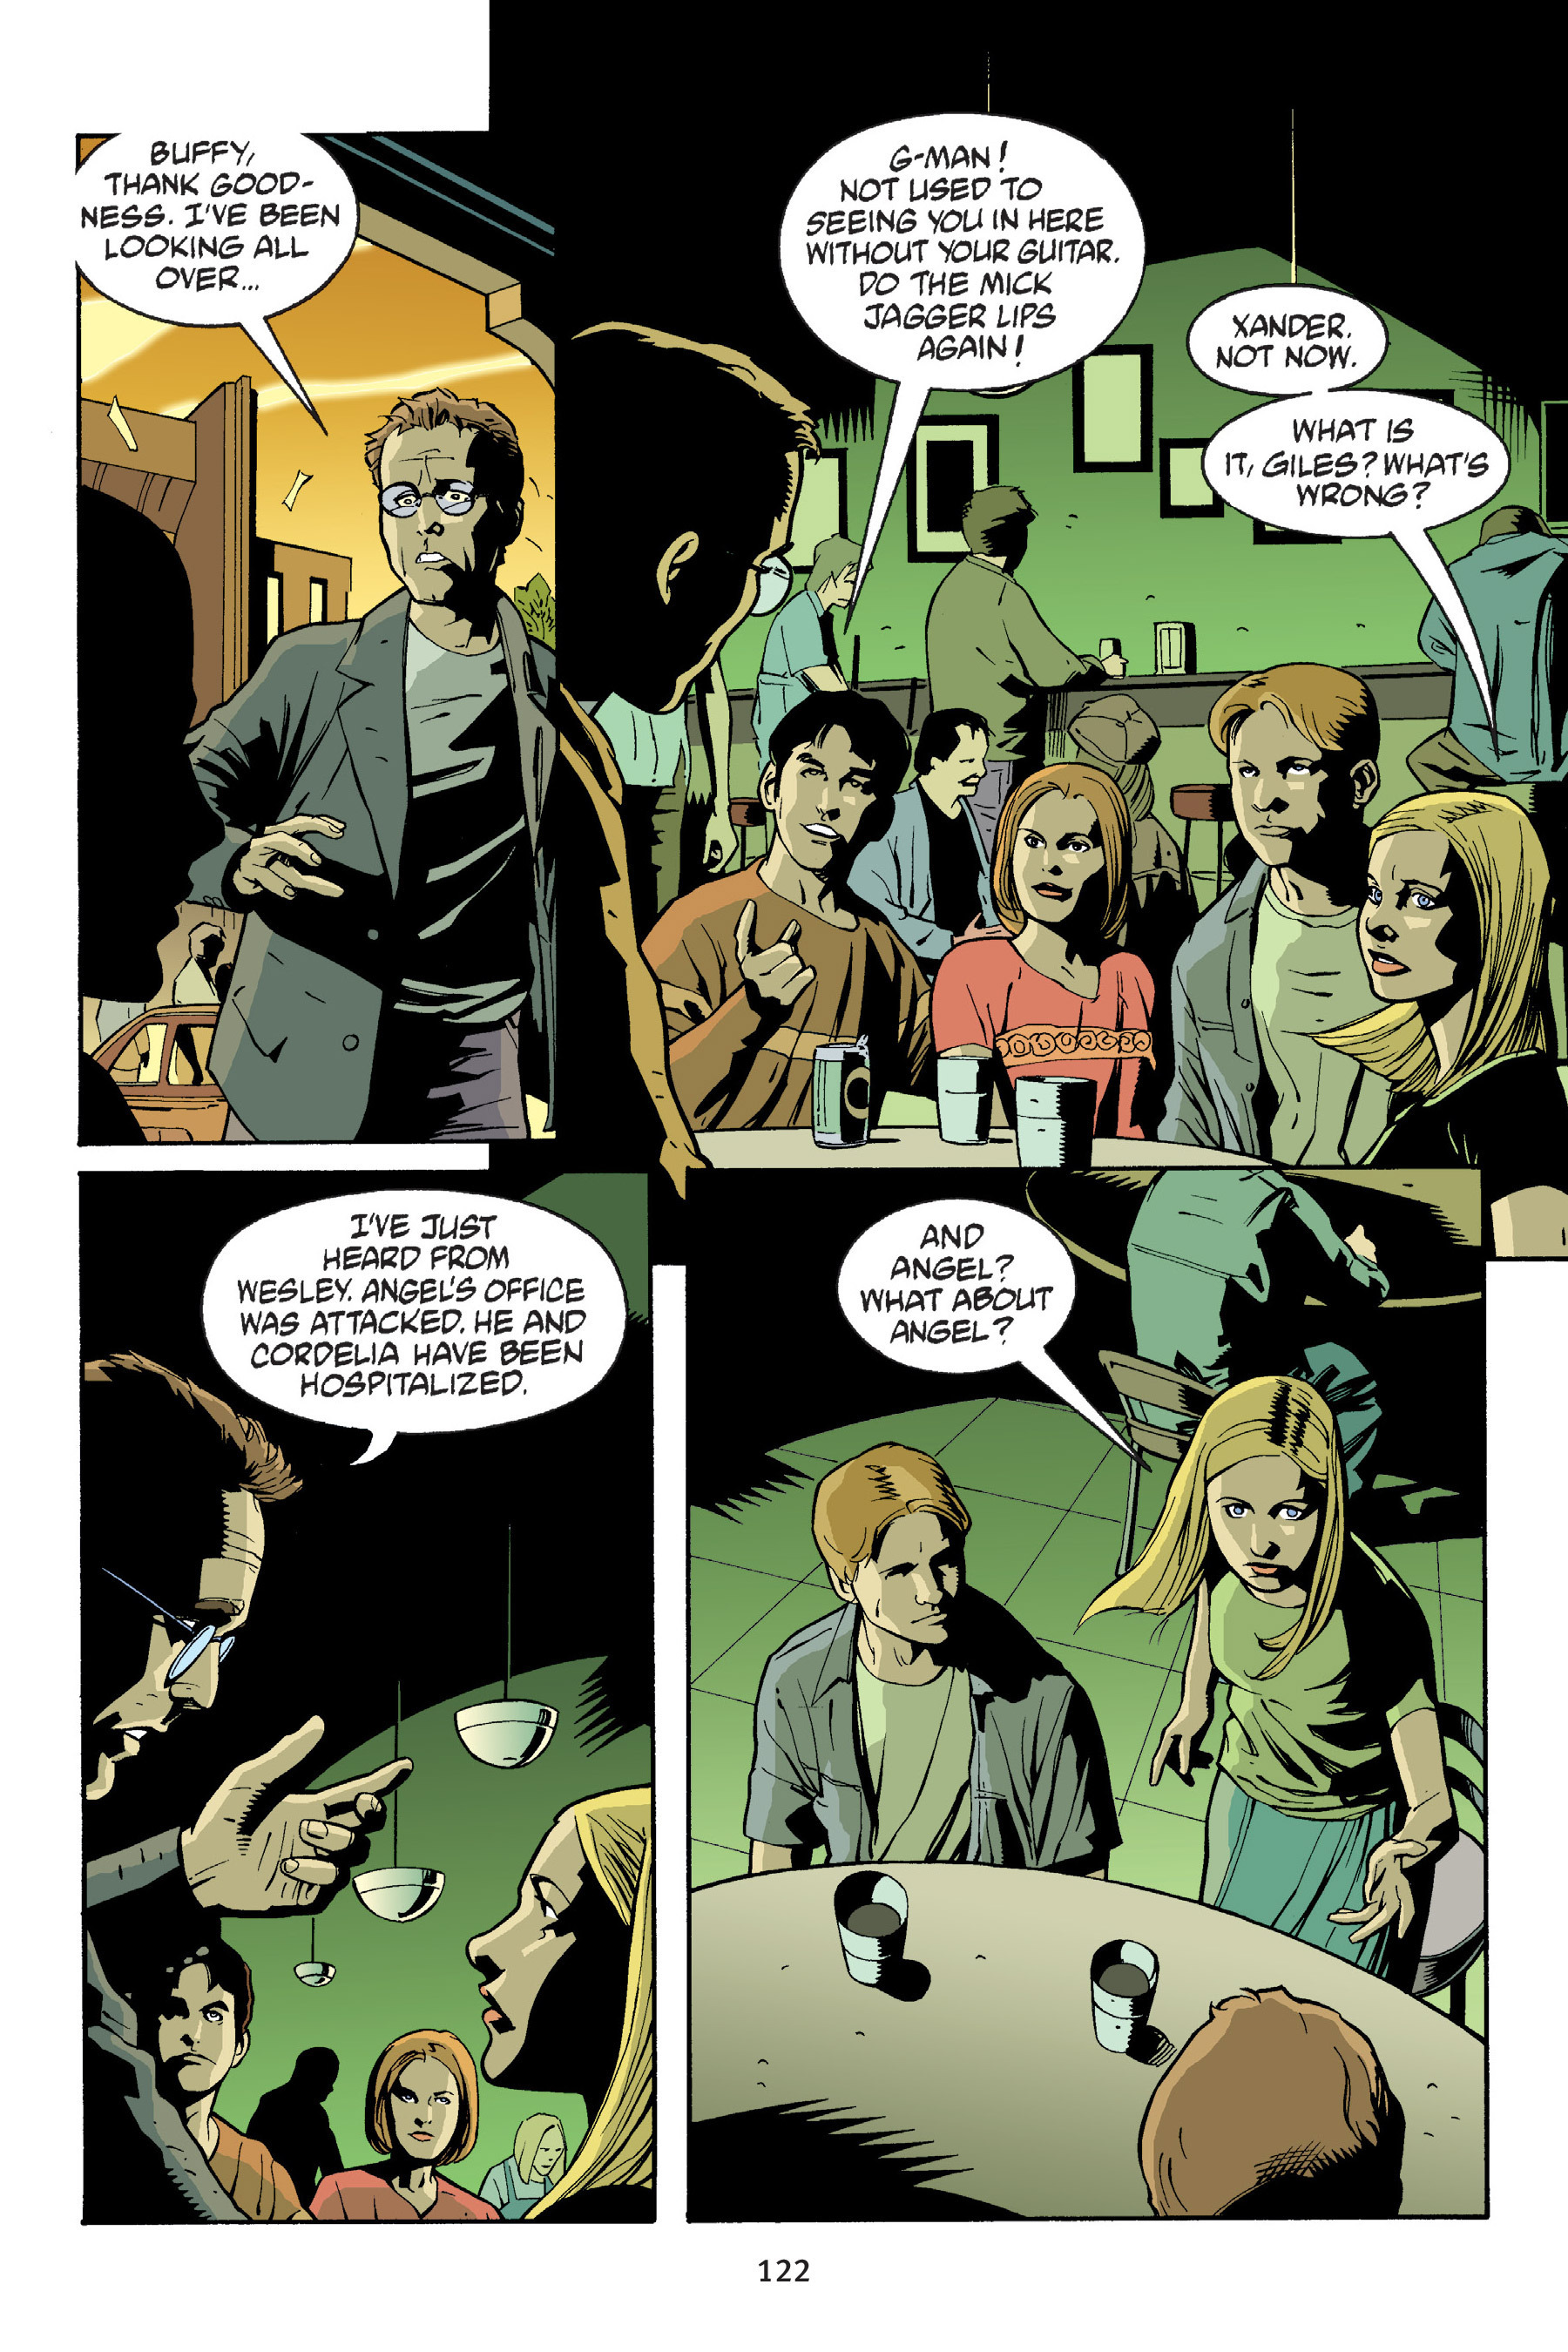 Read online Buffy the Vampire Slayer: Omnibus comic -  Issue # TPB 6 - 122